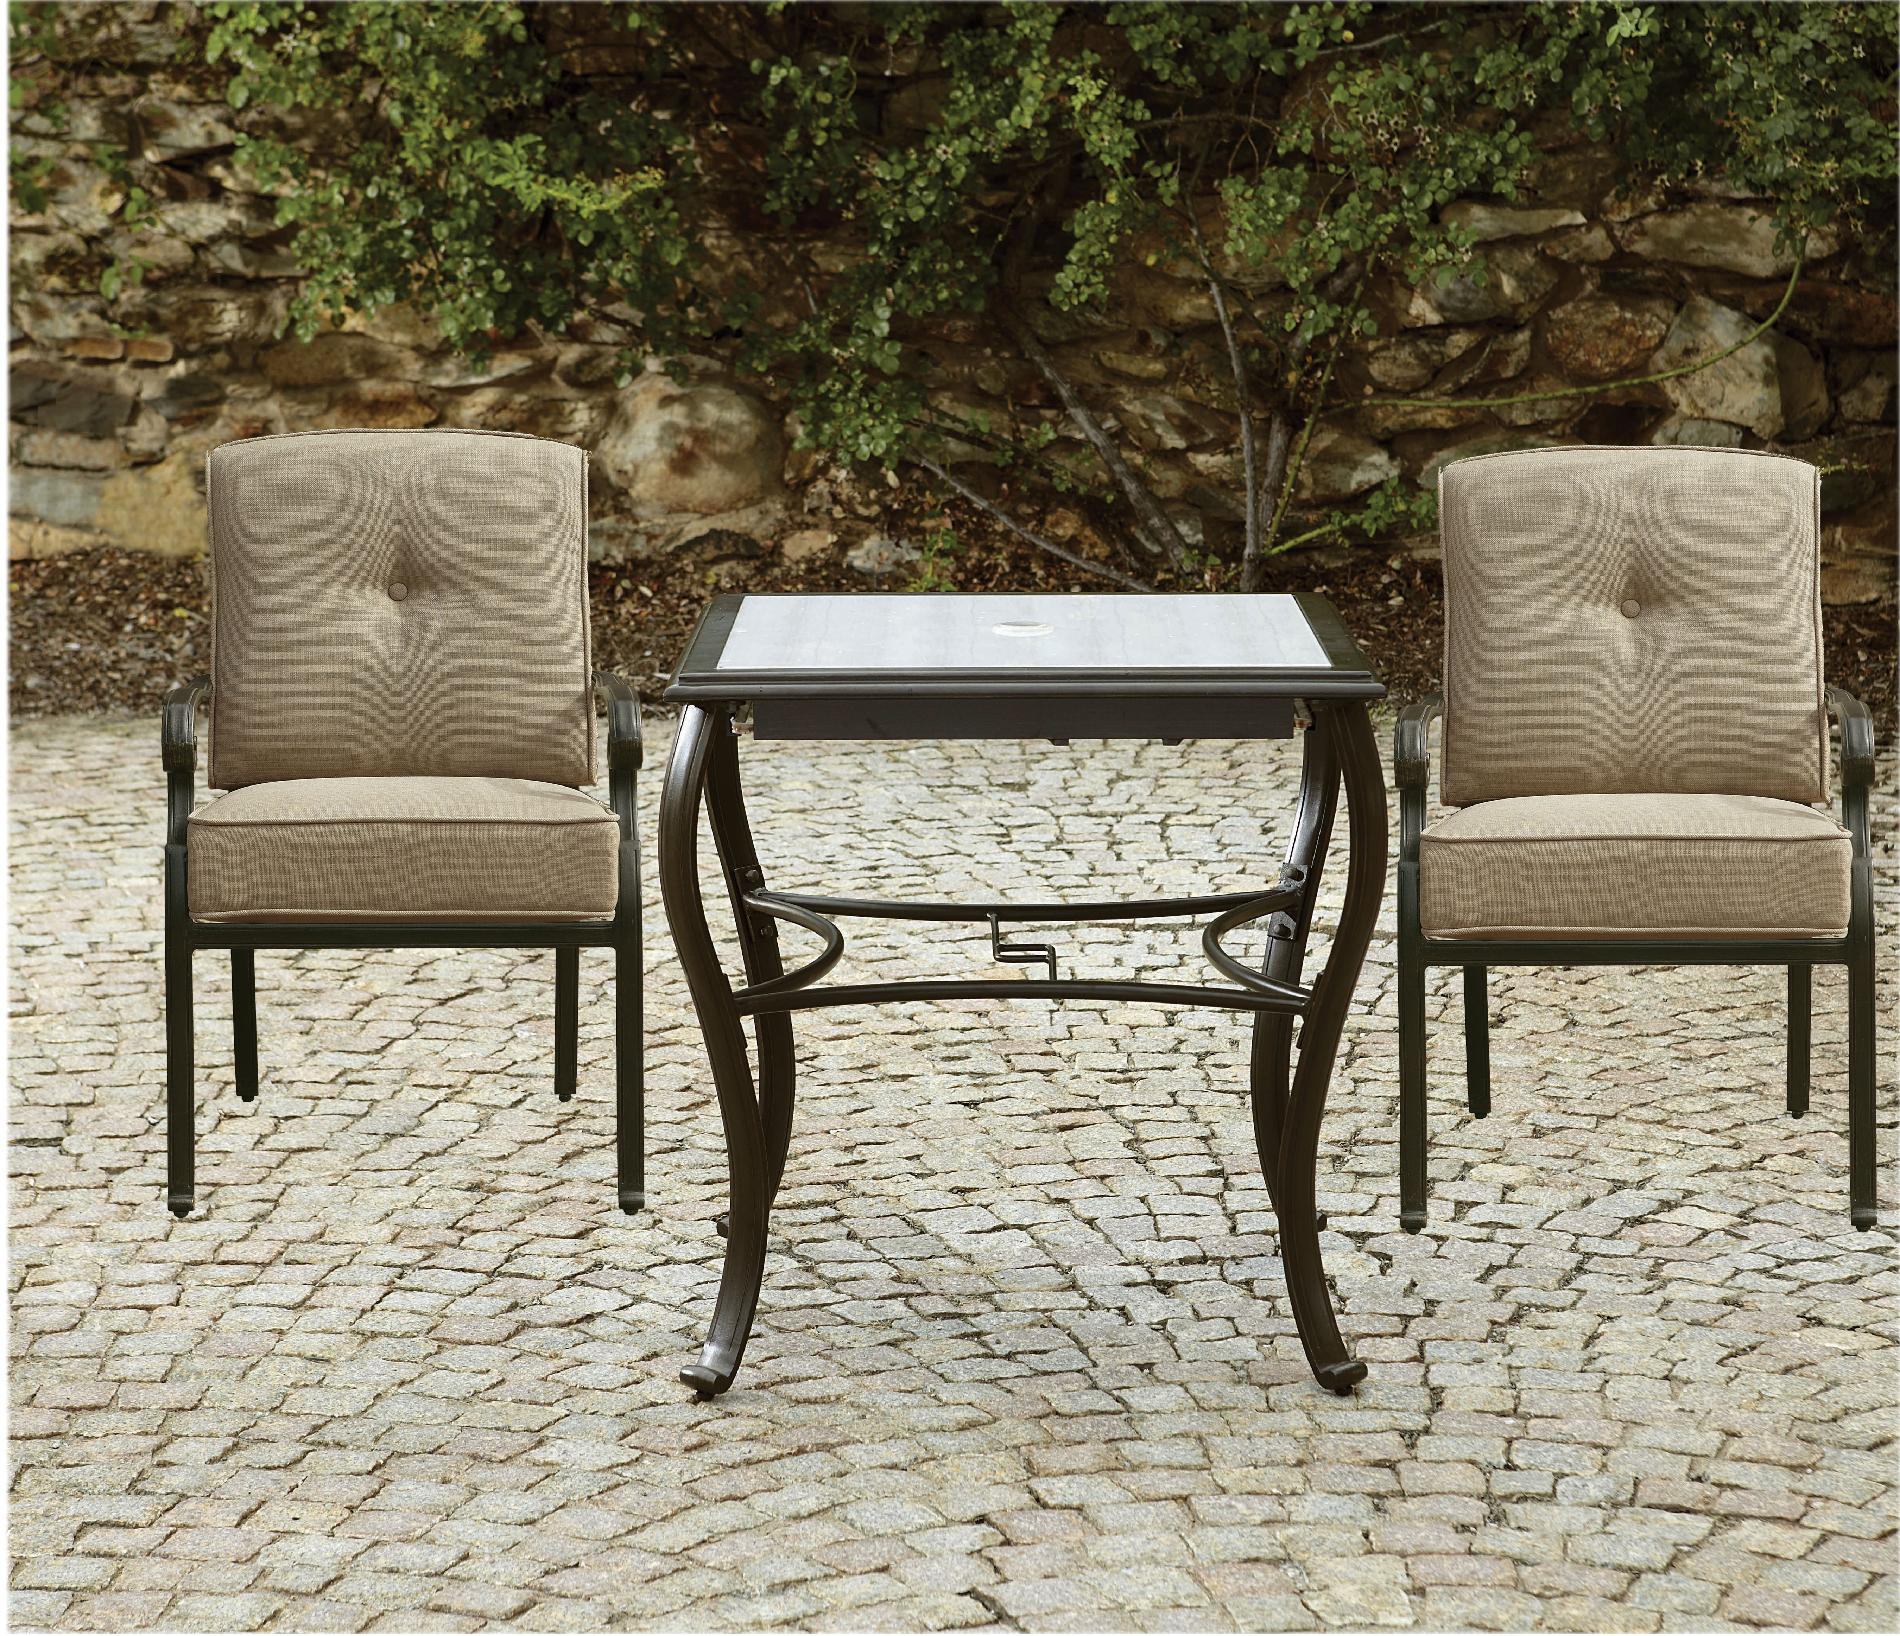 La-boy Outdoor Halley 3pc Bistro Set With Lighted Table